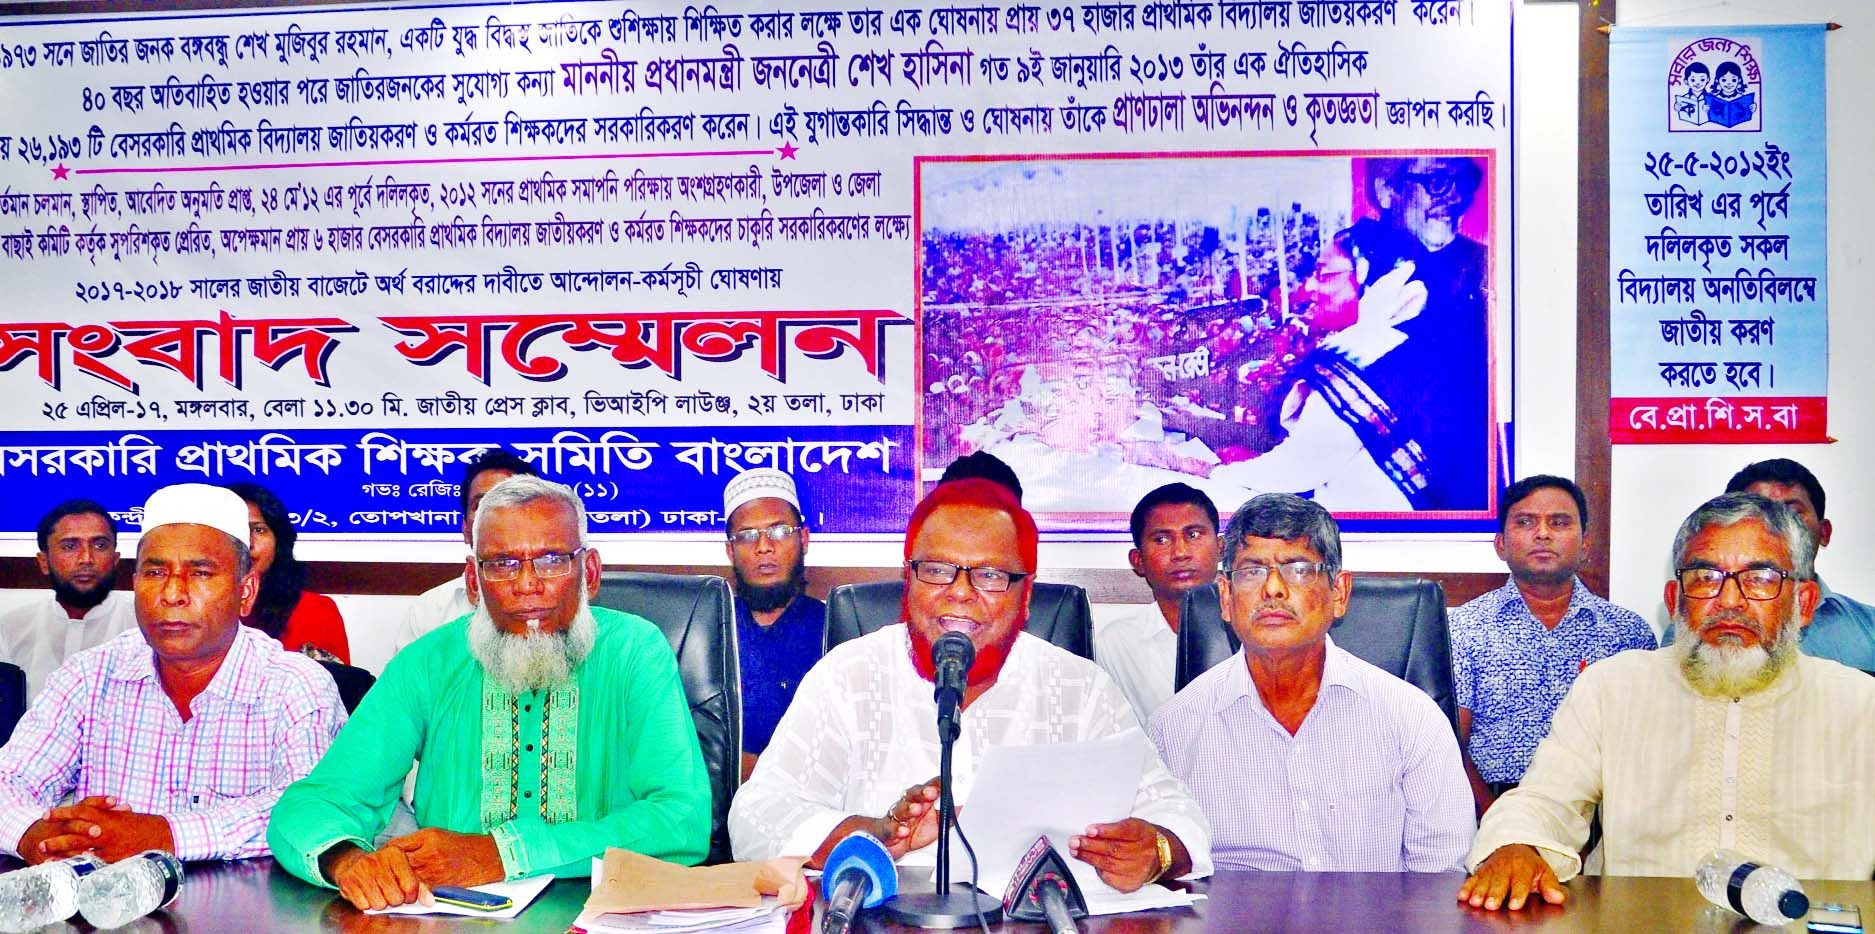 Coordinator of Non-Government Primary Teachers' Association Bangladesh  Mrigendra Mohan Saha speaking at a press conference at the Jatiya Press Club on Tuesday demanding nationalization of all non-government primary schools.n